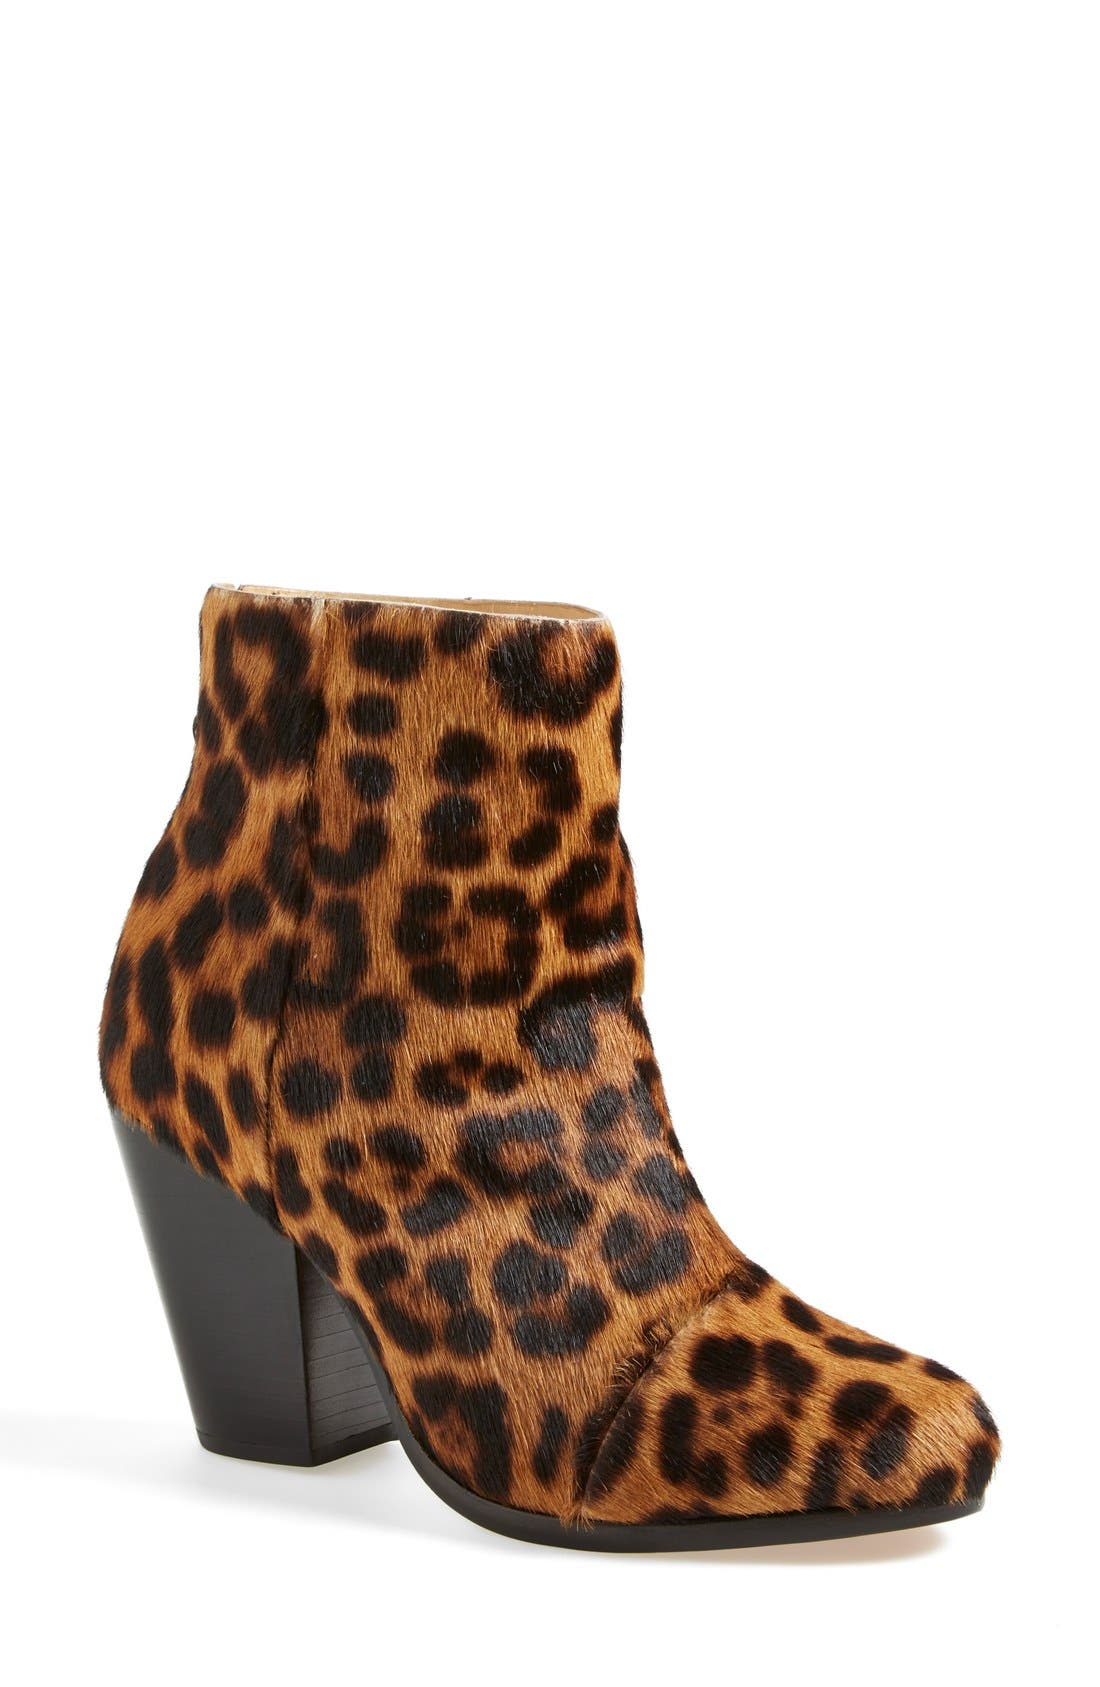 Alternate Image 1 Selected - rag & bone 'Newbury' Genuine Calf Hair Bootie (Women)